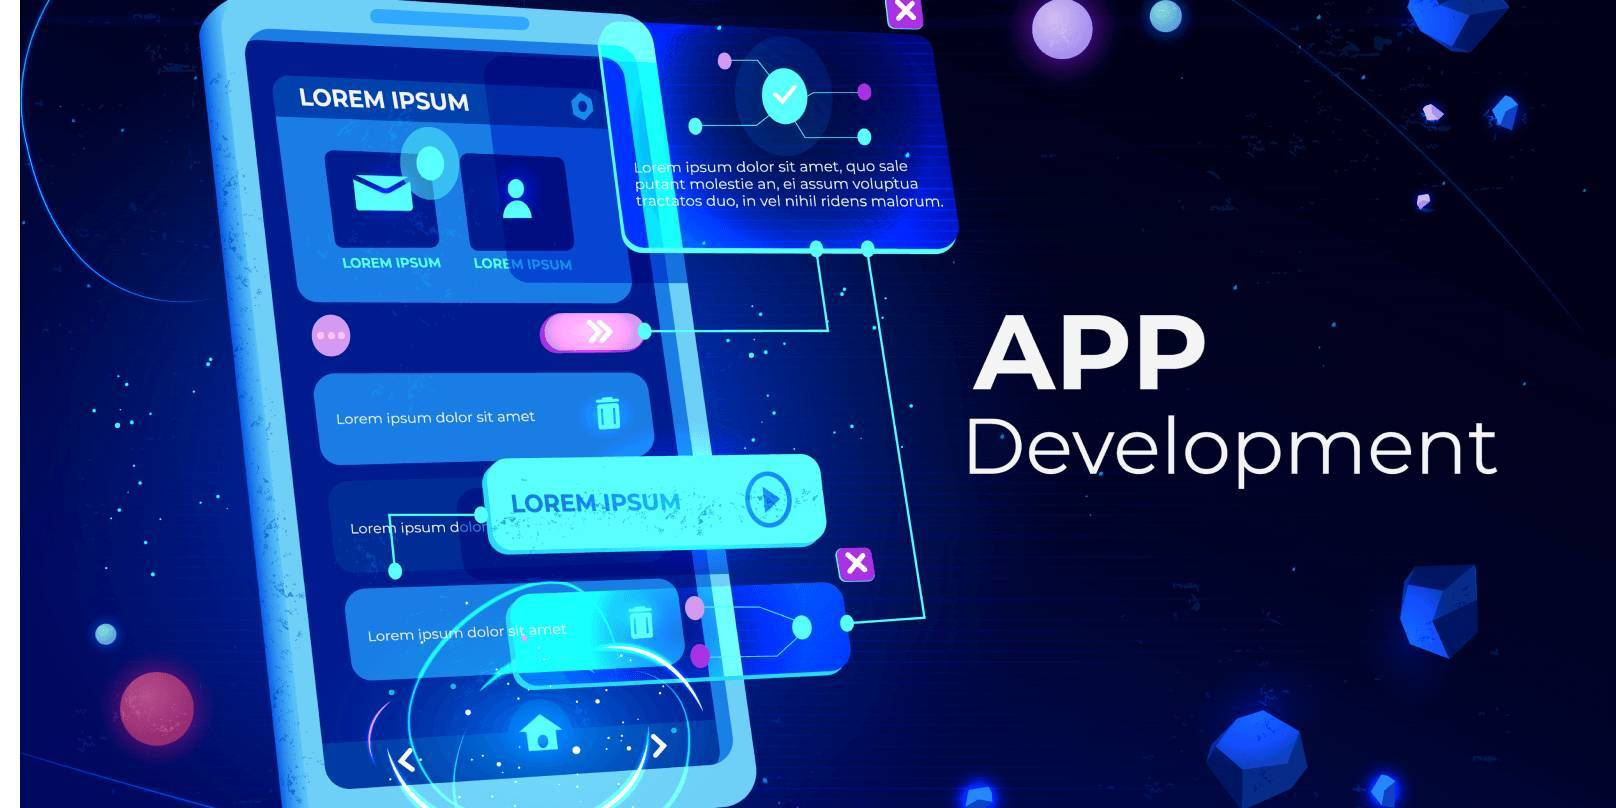 5 Tips To Optimize The Mobile App Development